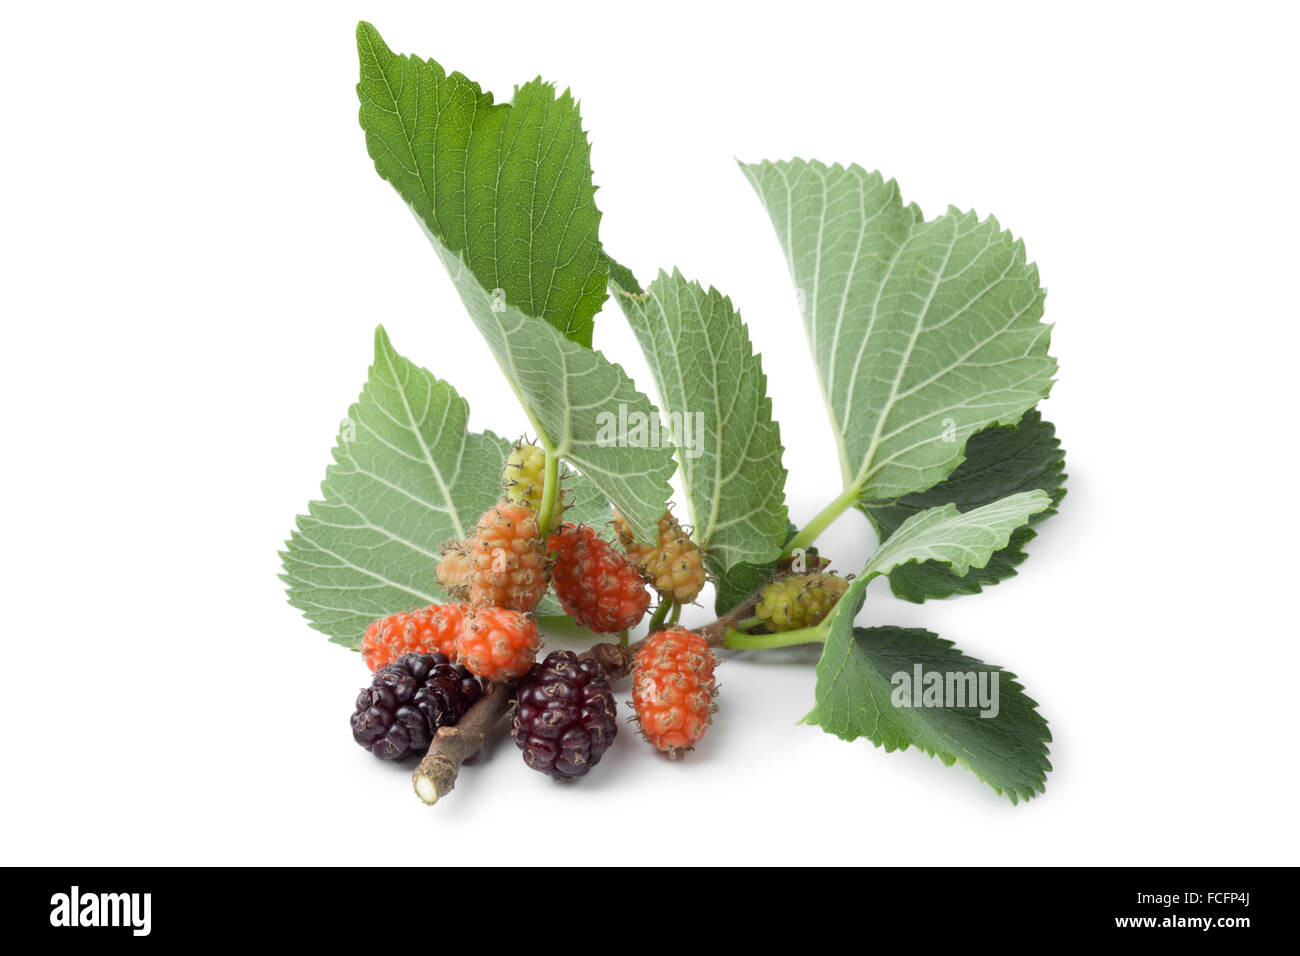 Fresh twig with mulberries on white background - Stock Image